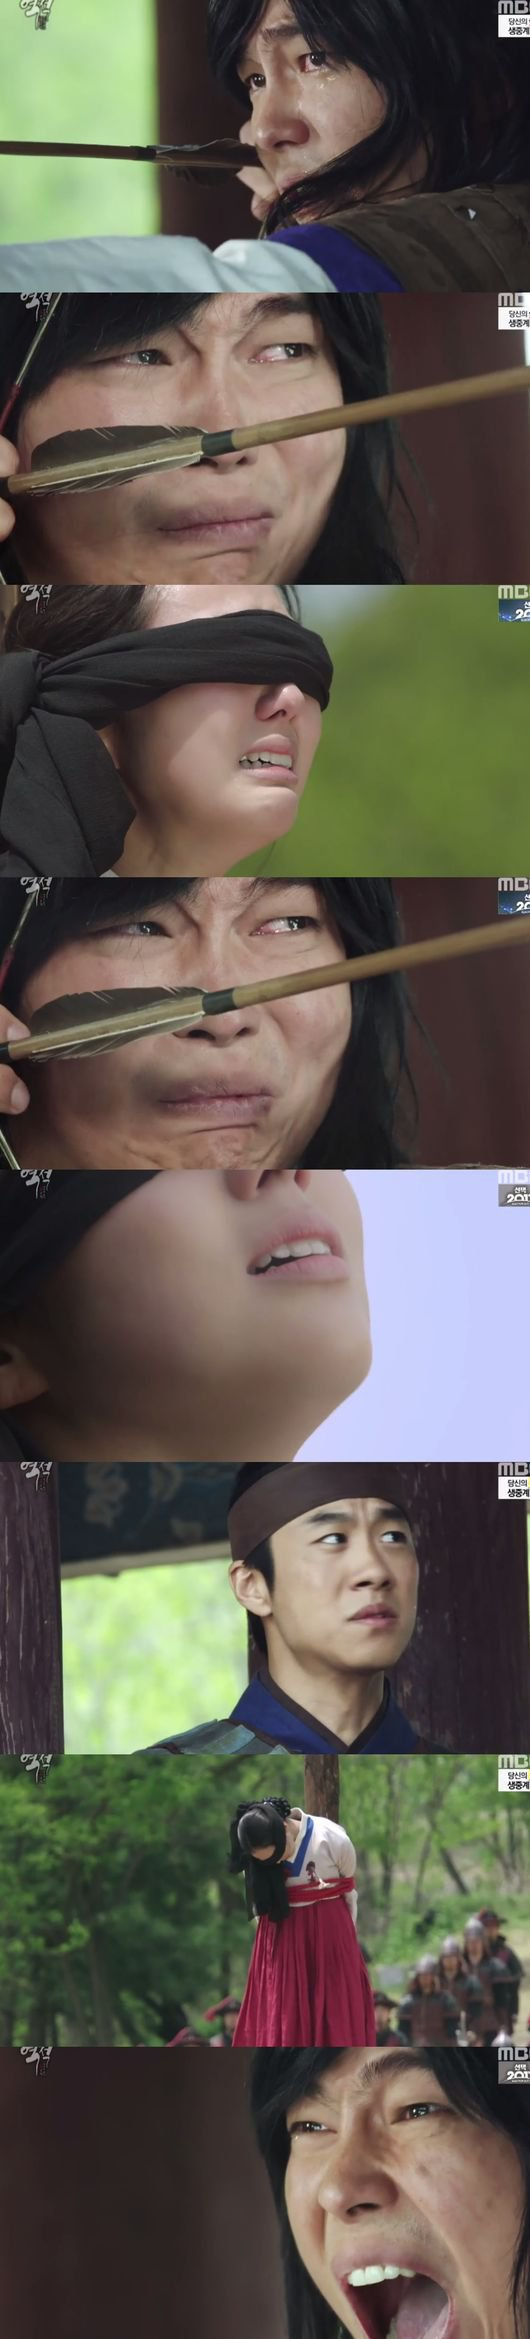 "[Spoiler] ""Rebel: Thief Who Stole the People"" Yoon Kyun-sang shoots arrow at Chae Soo-bin"